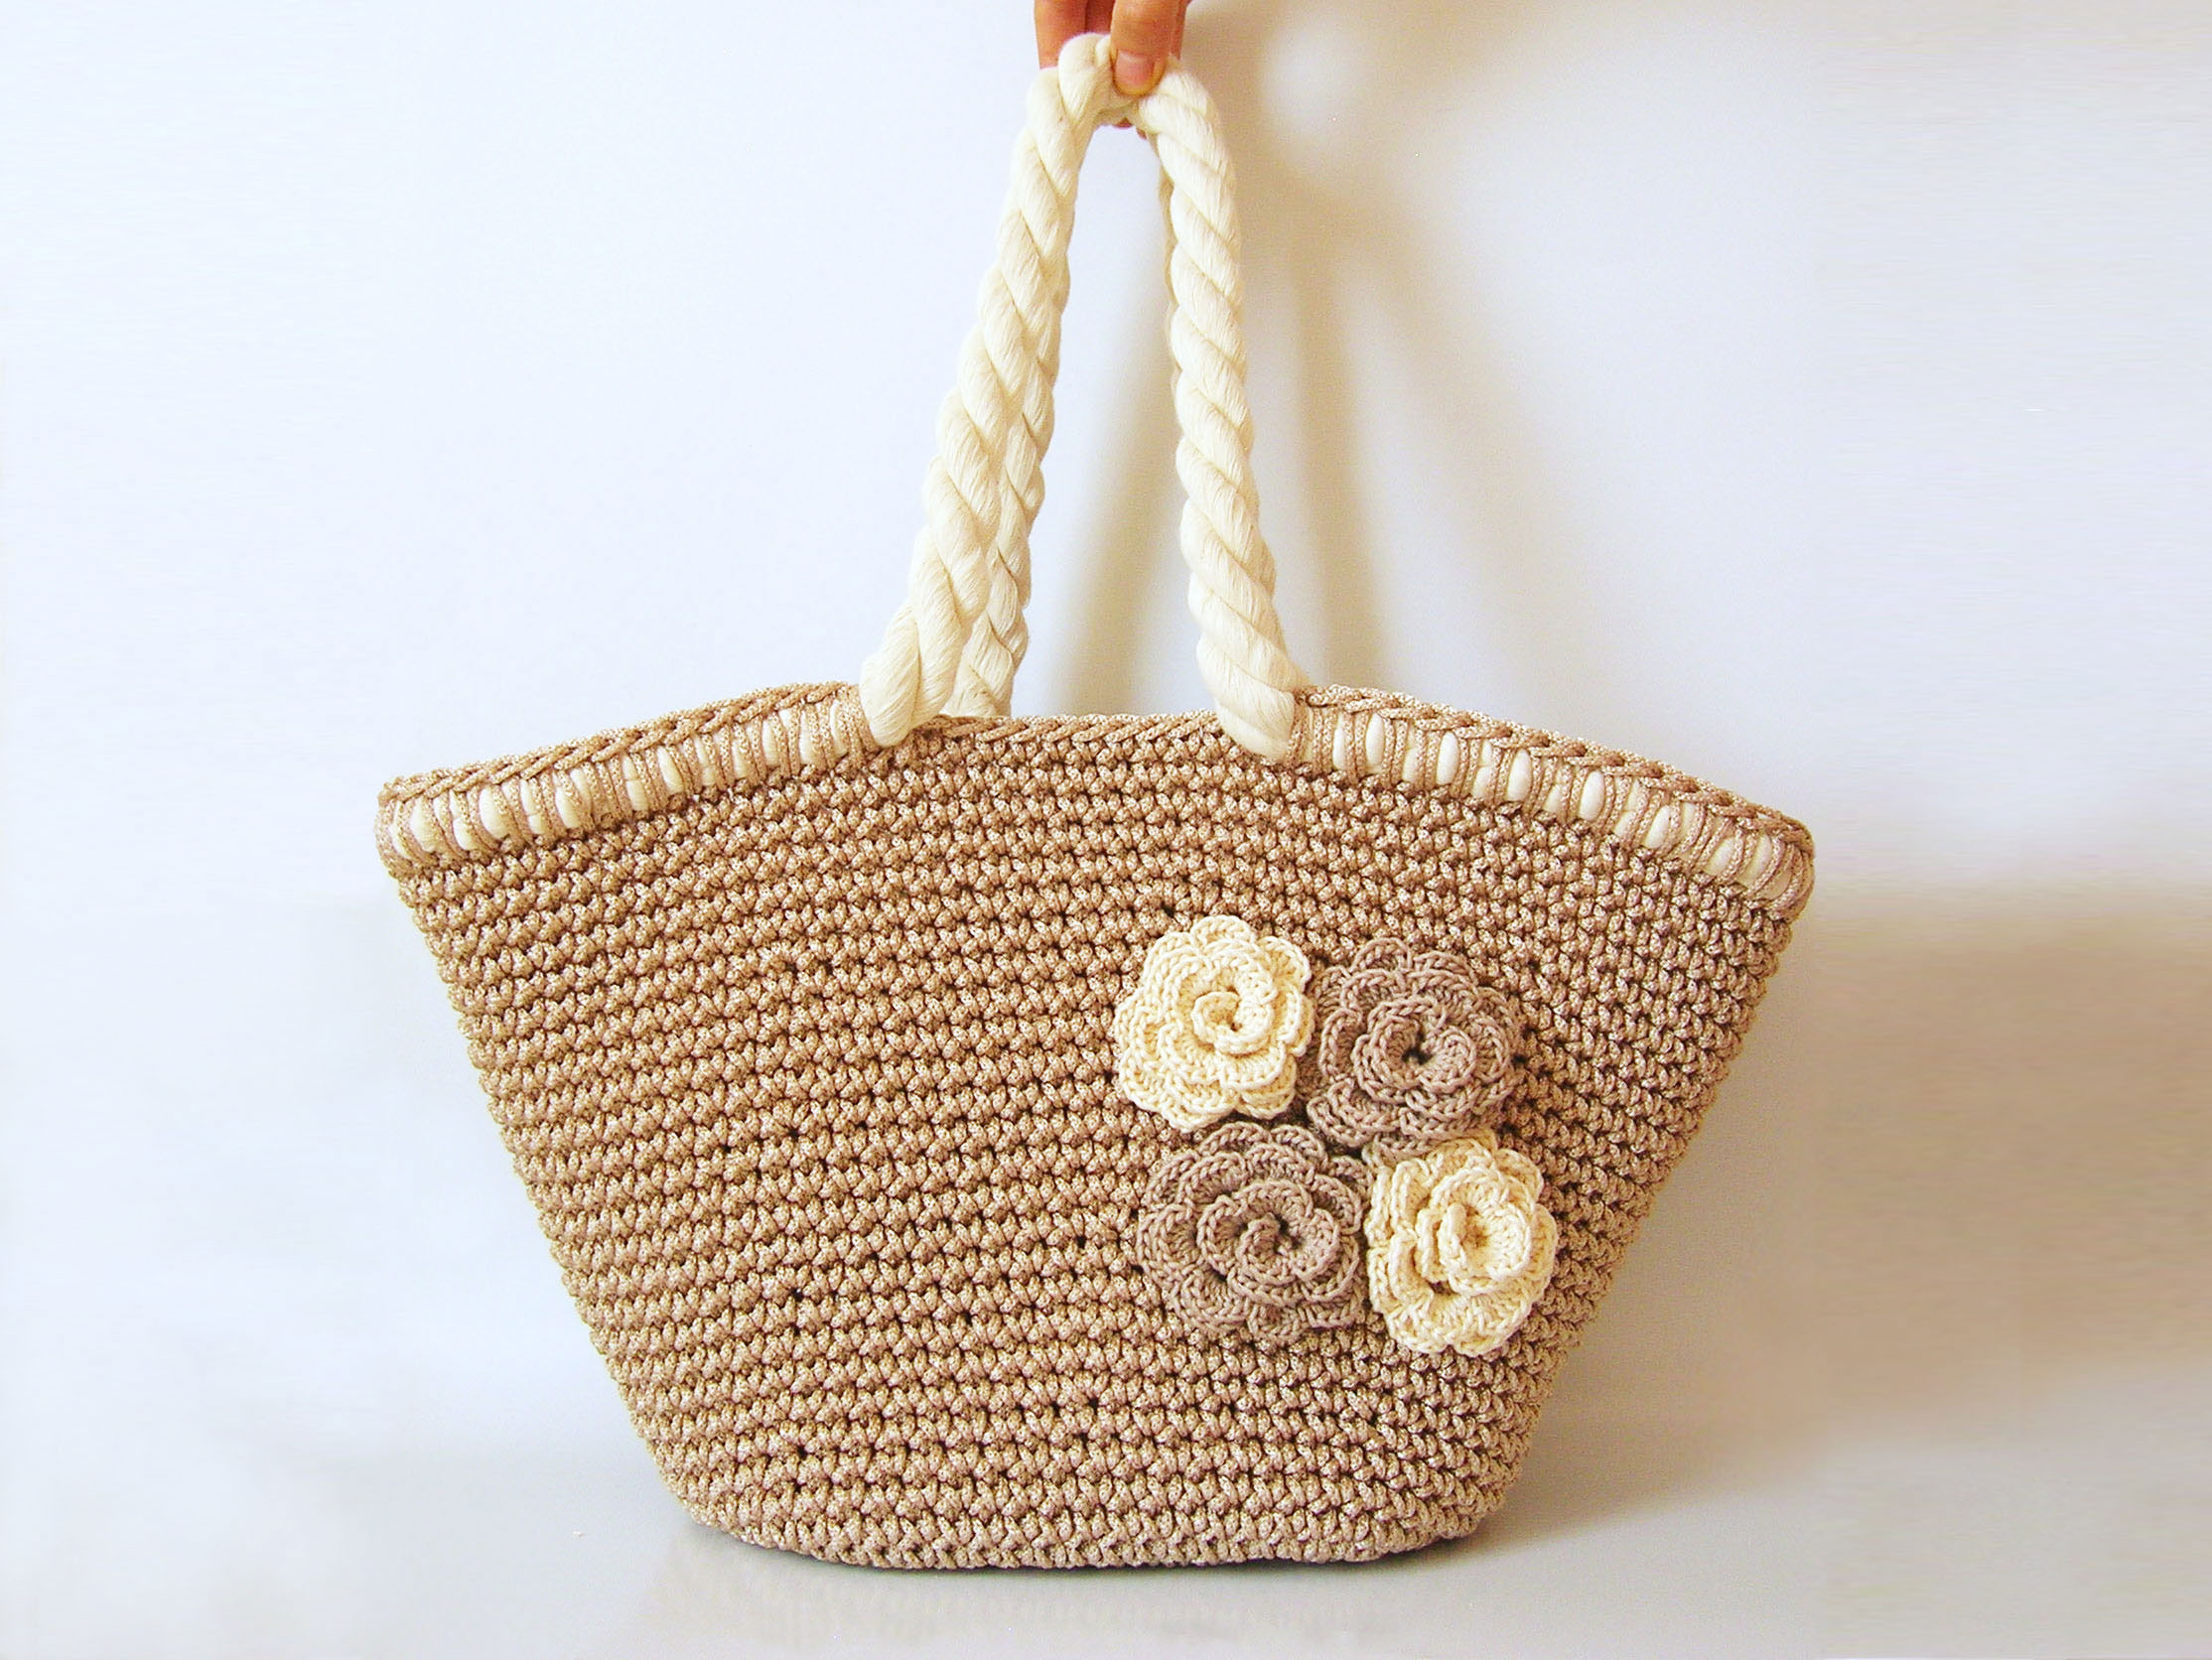 Crocheted Handbag : Beach bag with flowers/ Bolso de playa con flores Chabepatterns